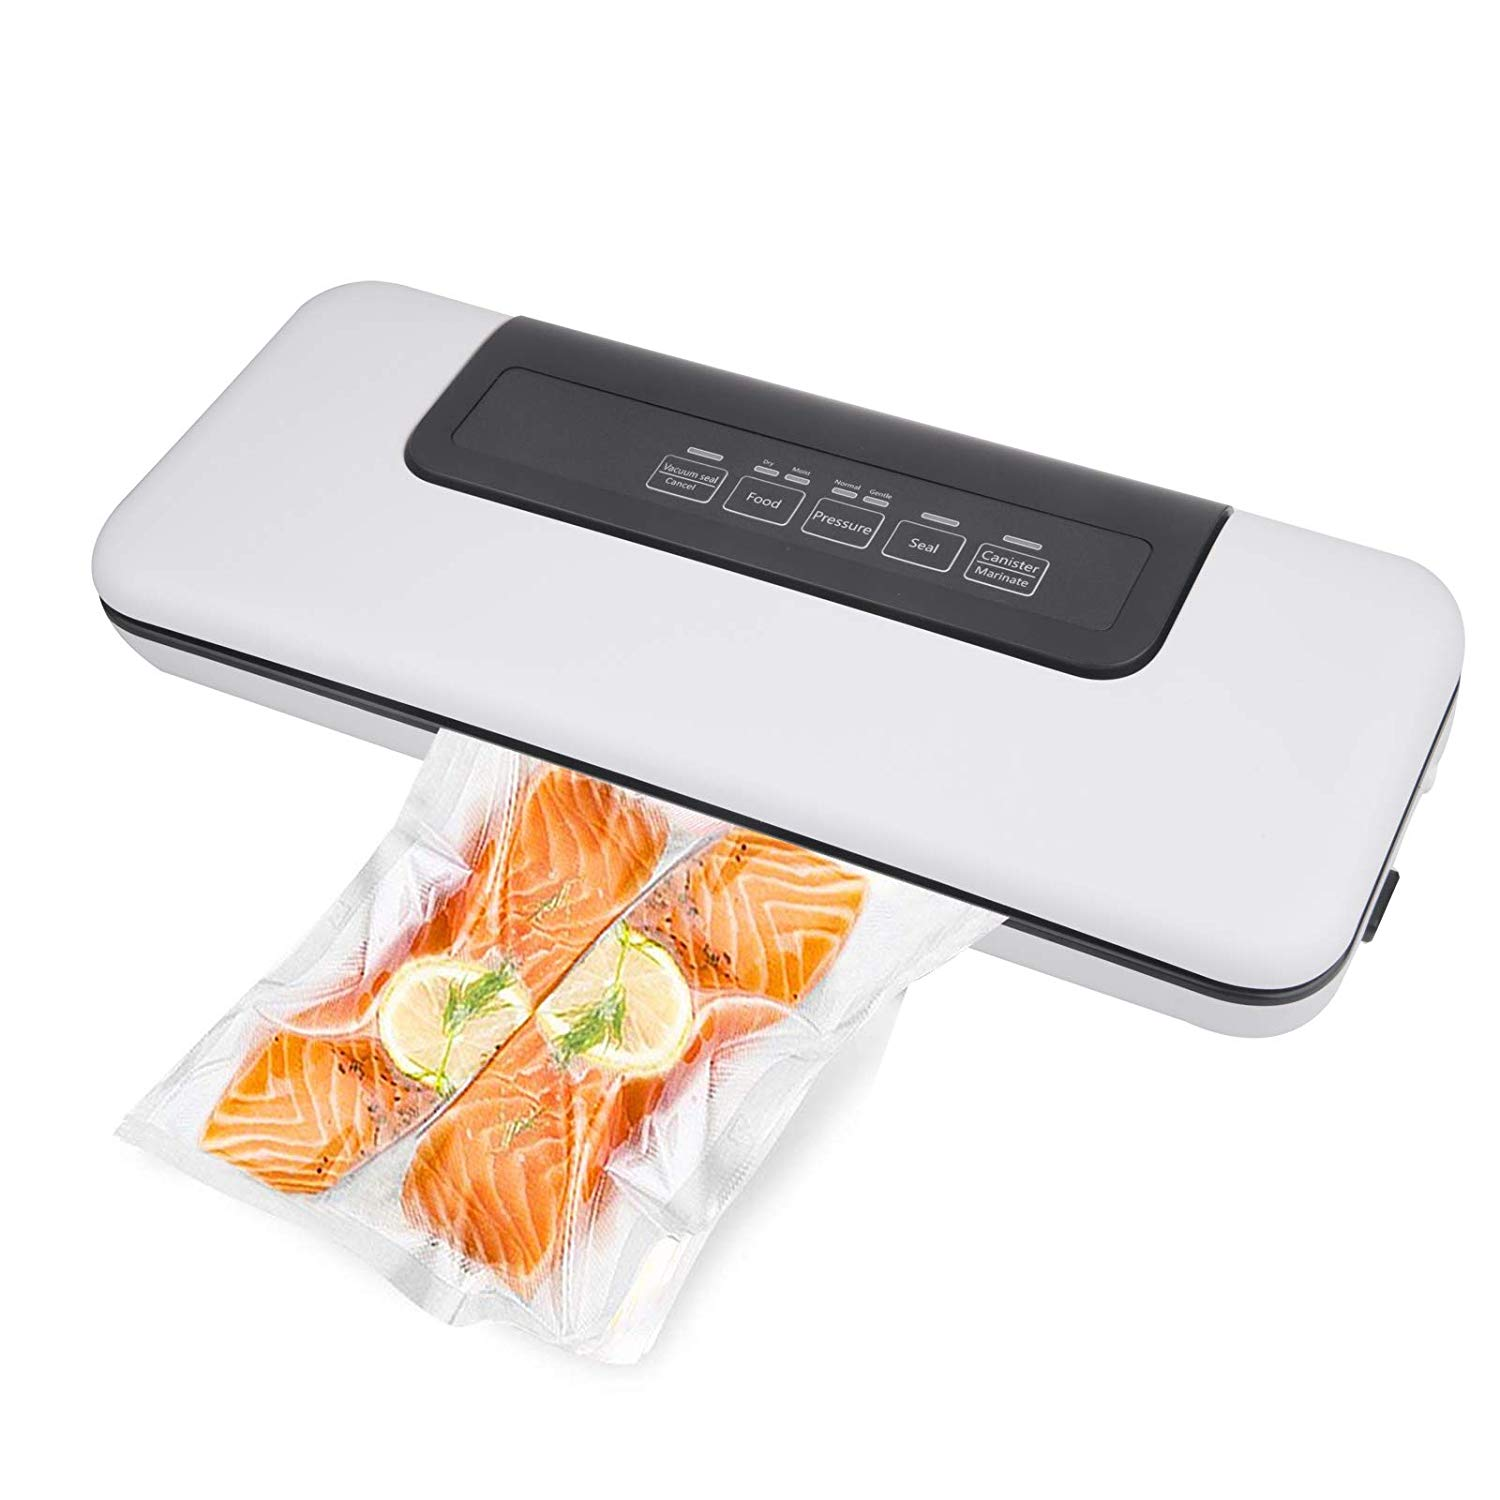 TAKOYI Vacuum Sealer Food Saver Machine, Automatic Sealing System,Multi-function Vacuum Sealer Packer Automatic Vacuum Air Sealing Packing System|Food Preservation Dry, Moist, Delicate Soft Food with 12pcs Vacuum Bags